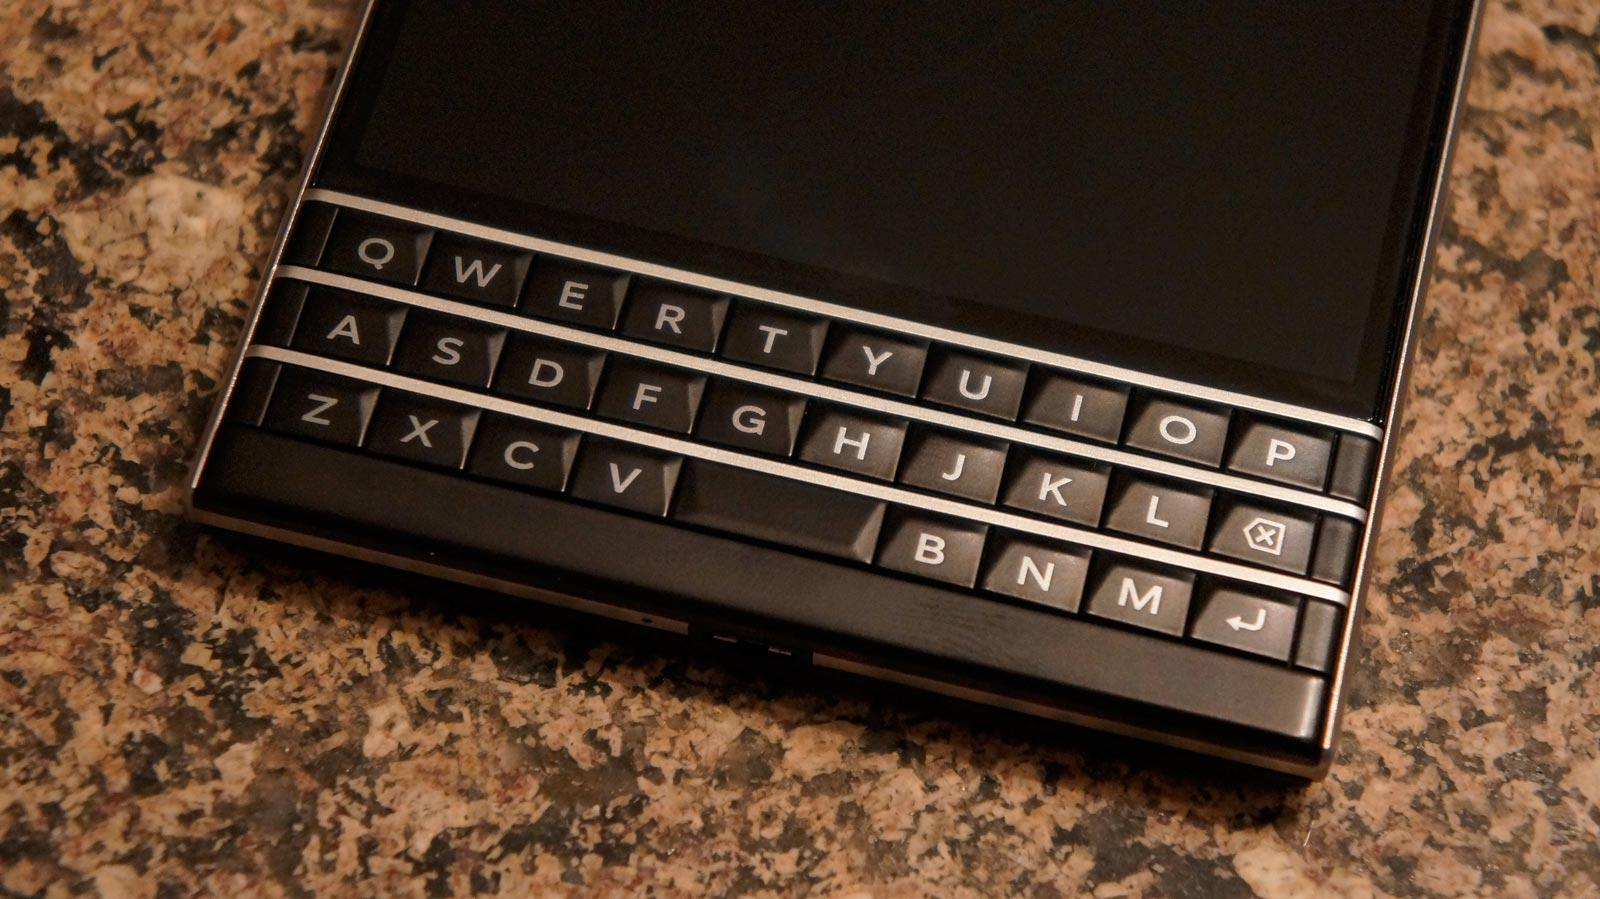 blackberrypassport_clavier